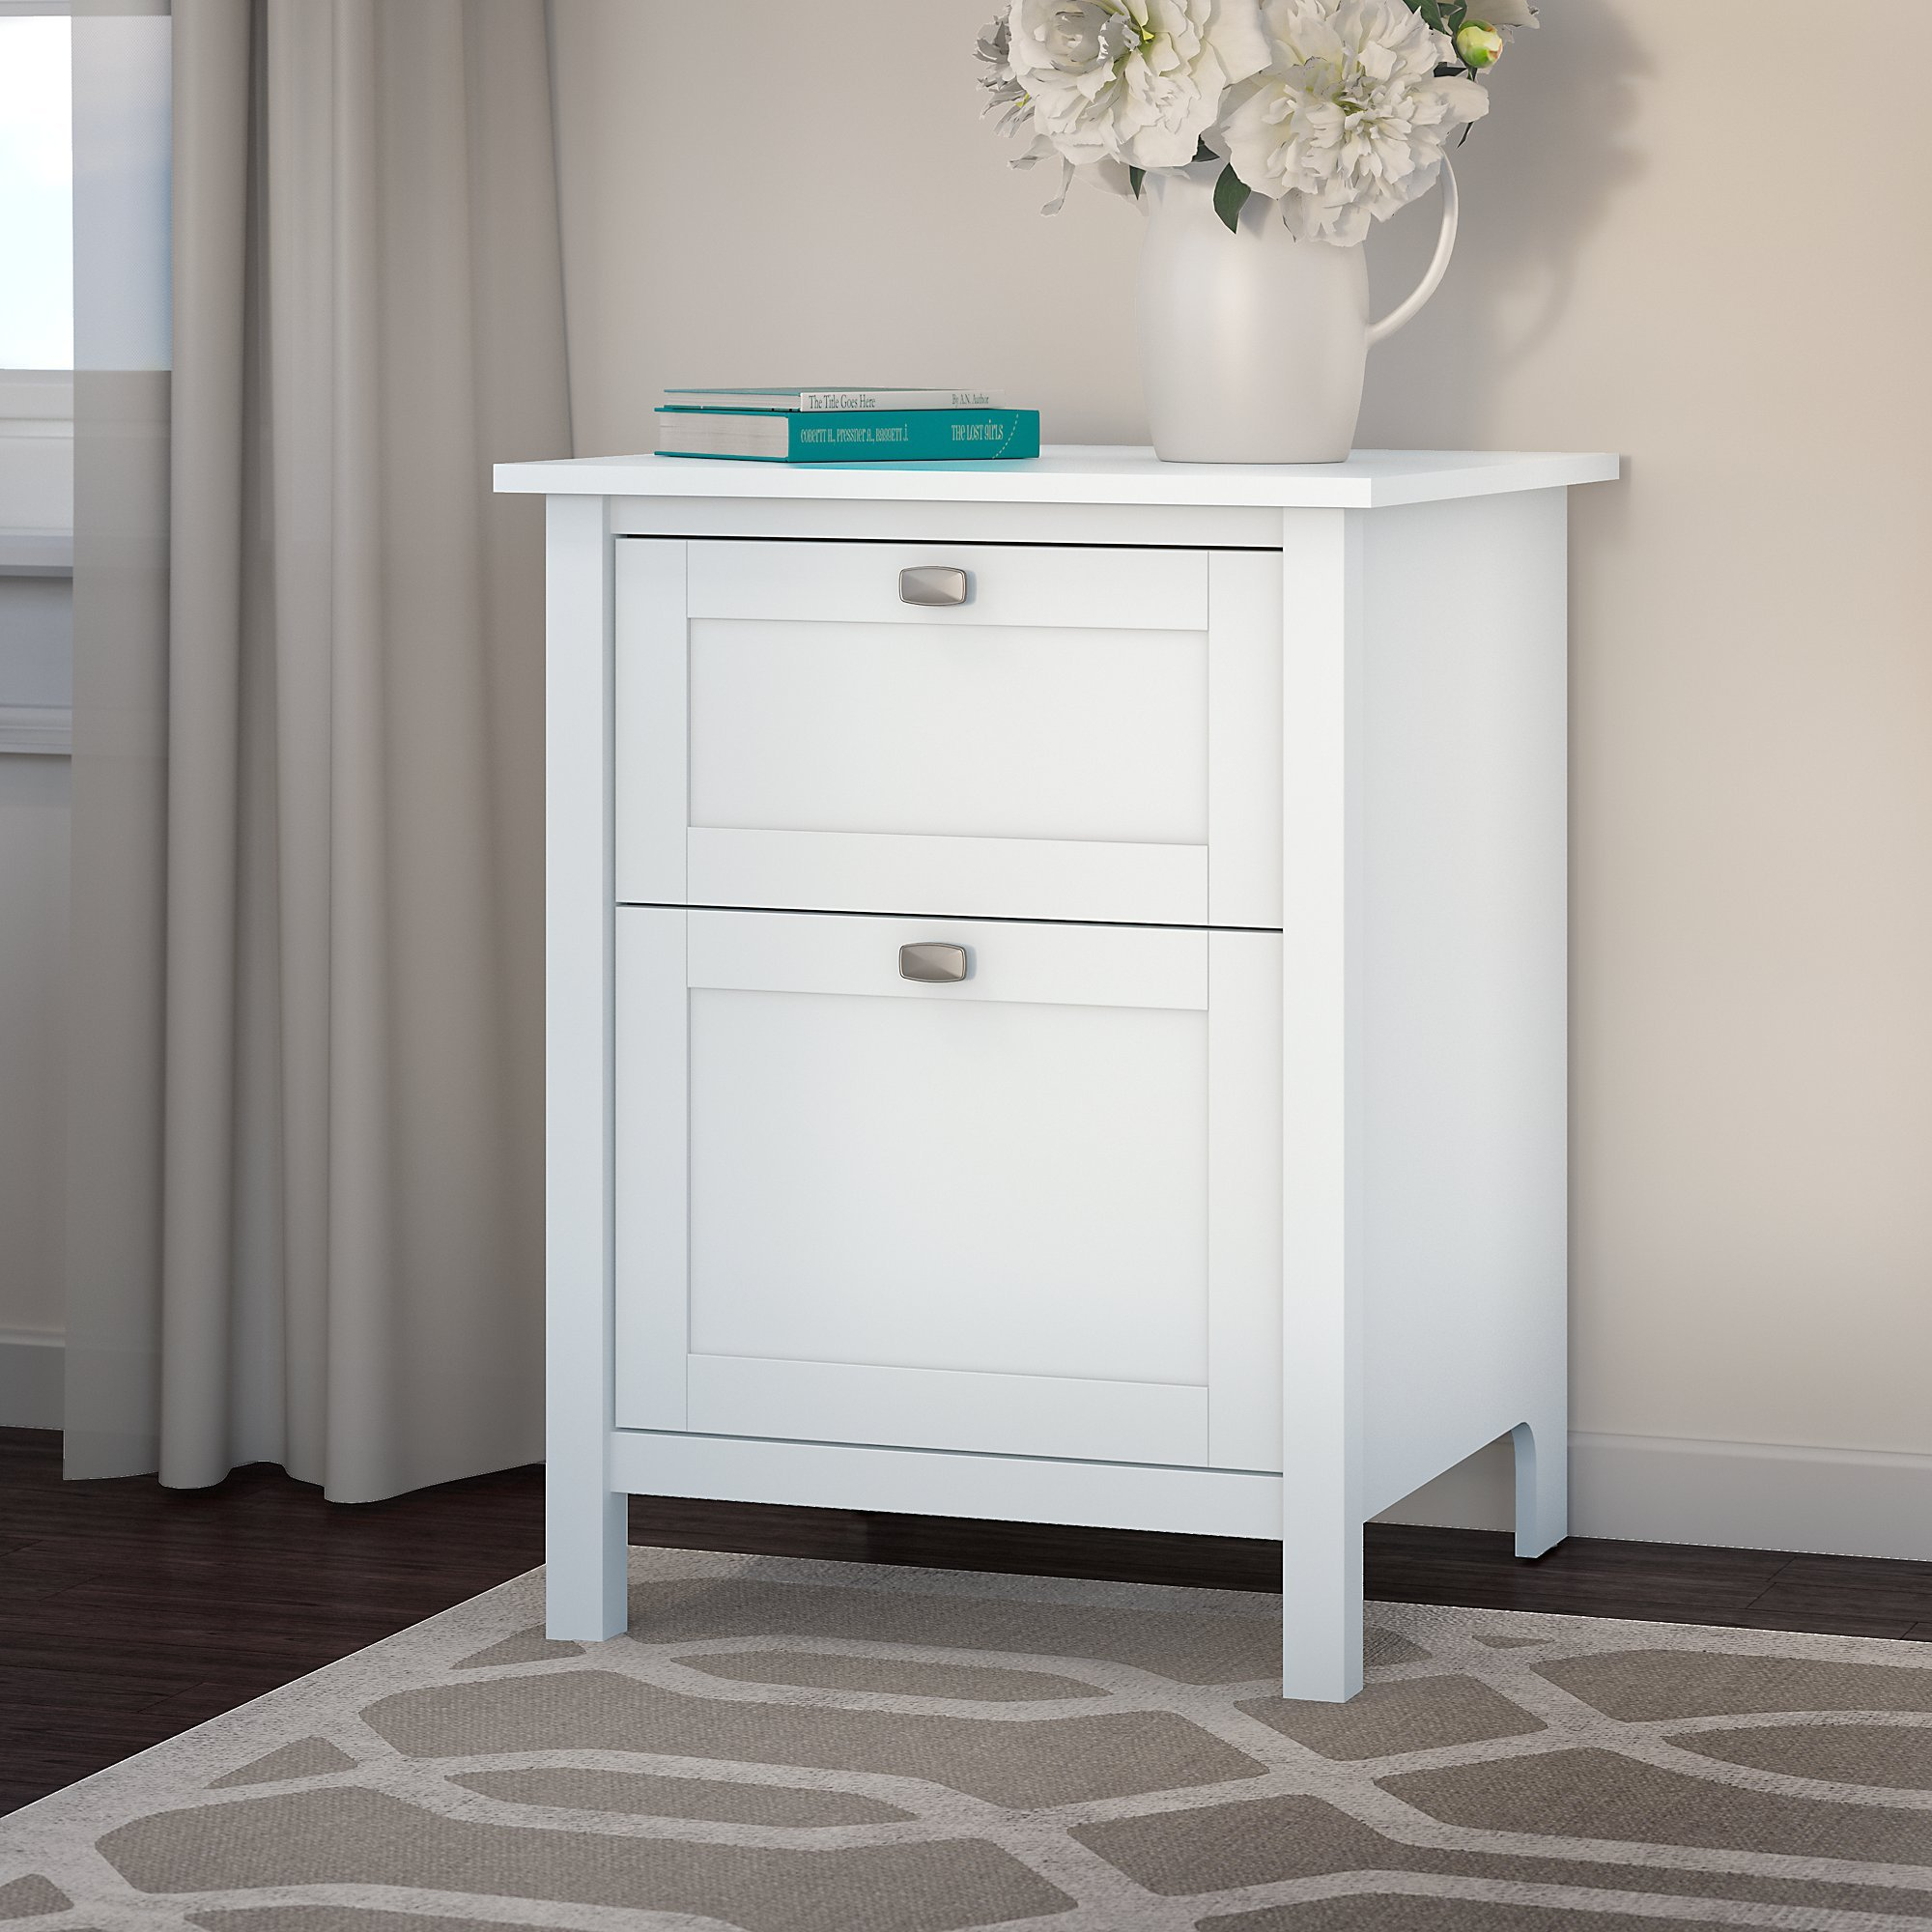 Broadview 2 Drawer File Cabinet